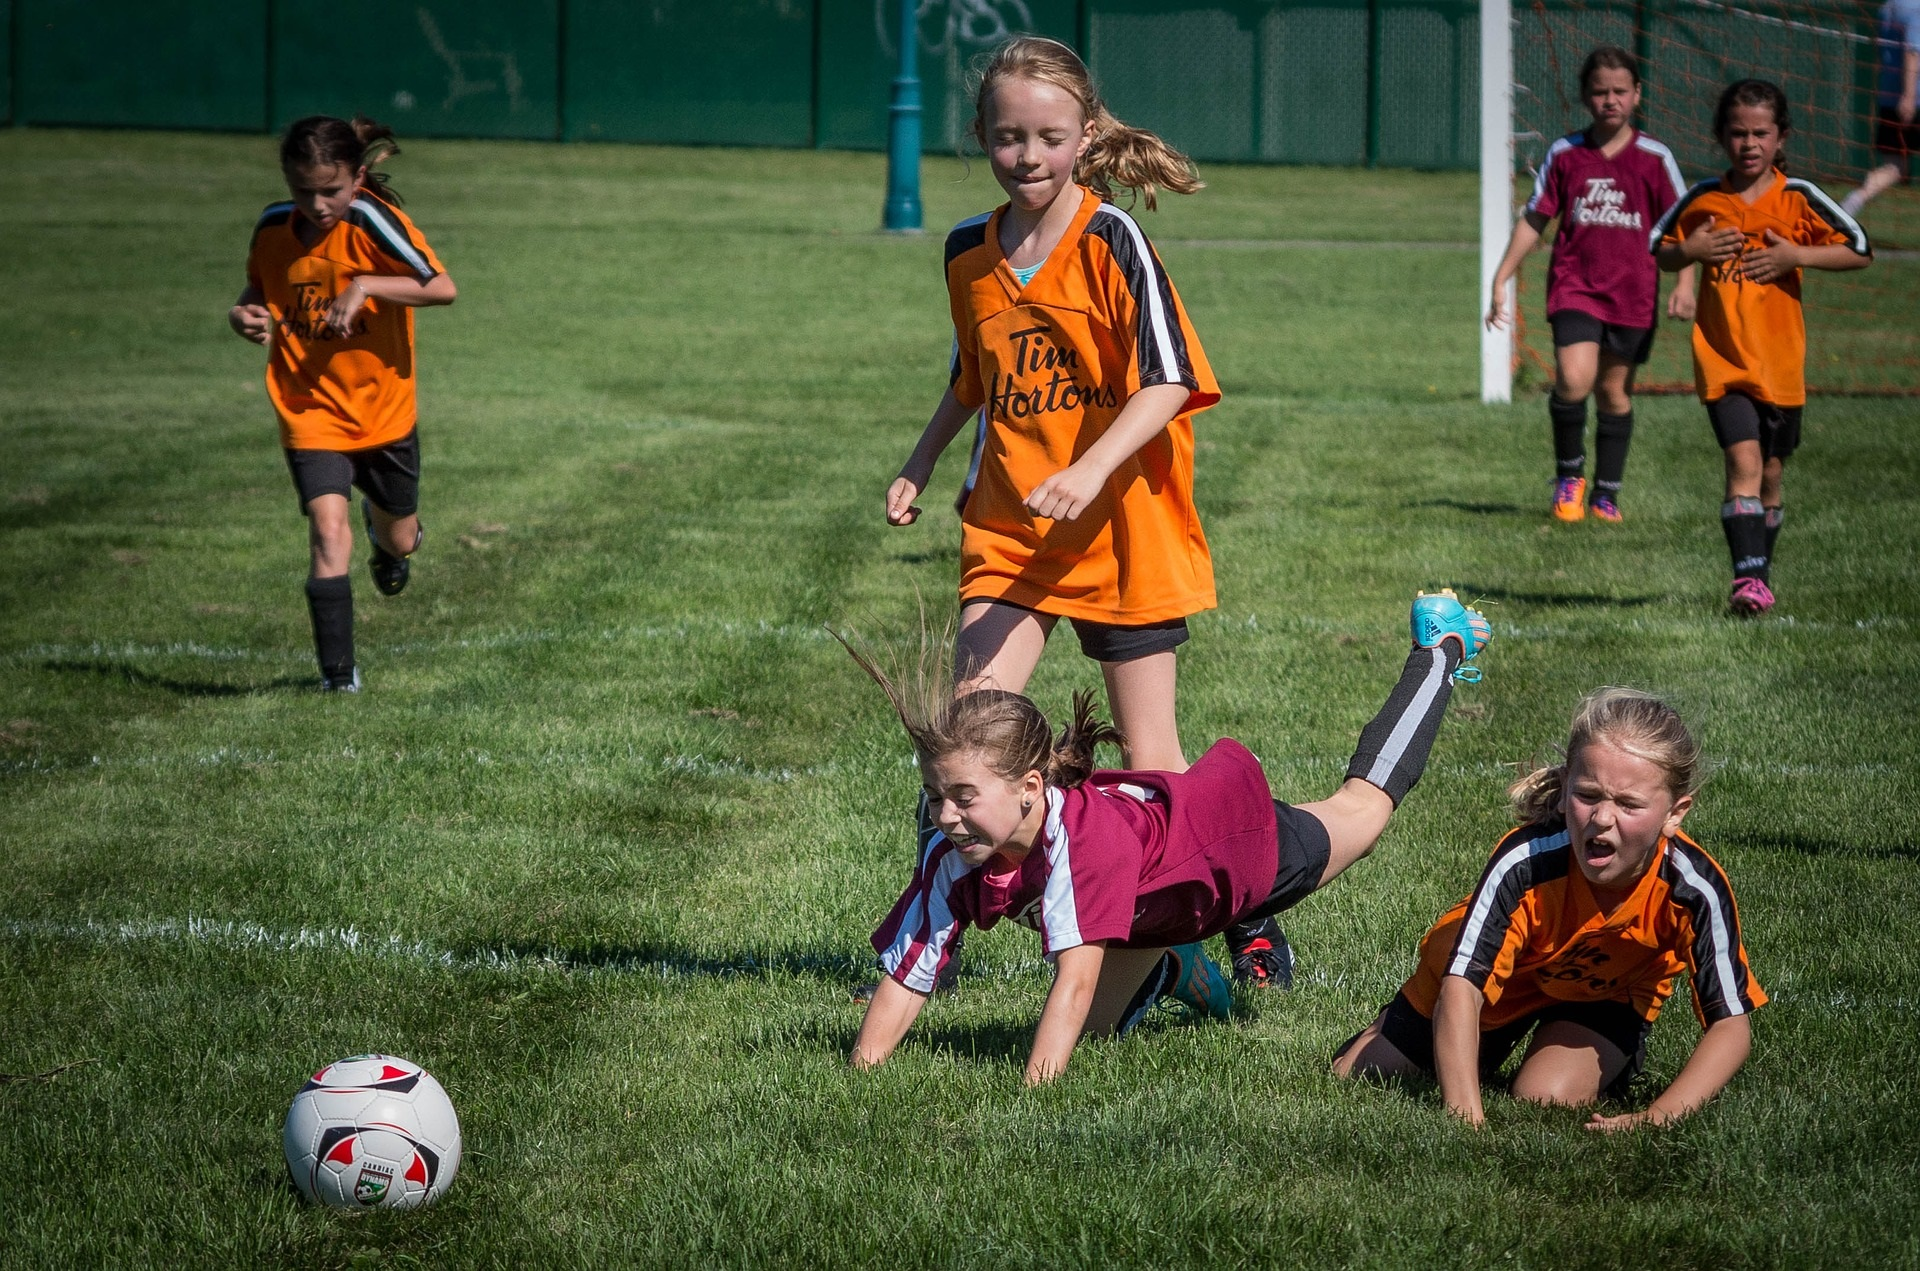 What Are The Worst Sports For Overuse Injuries In Children